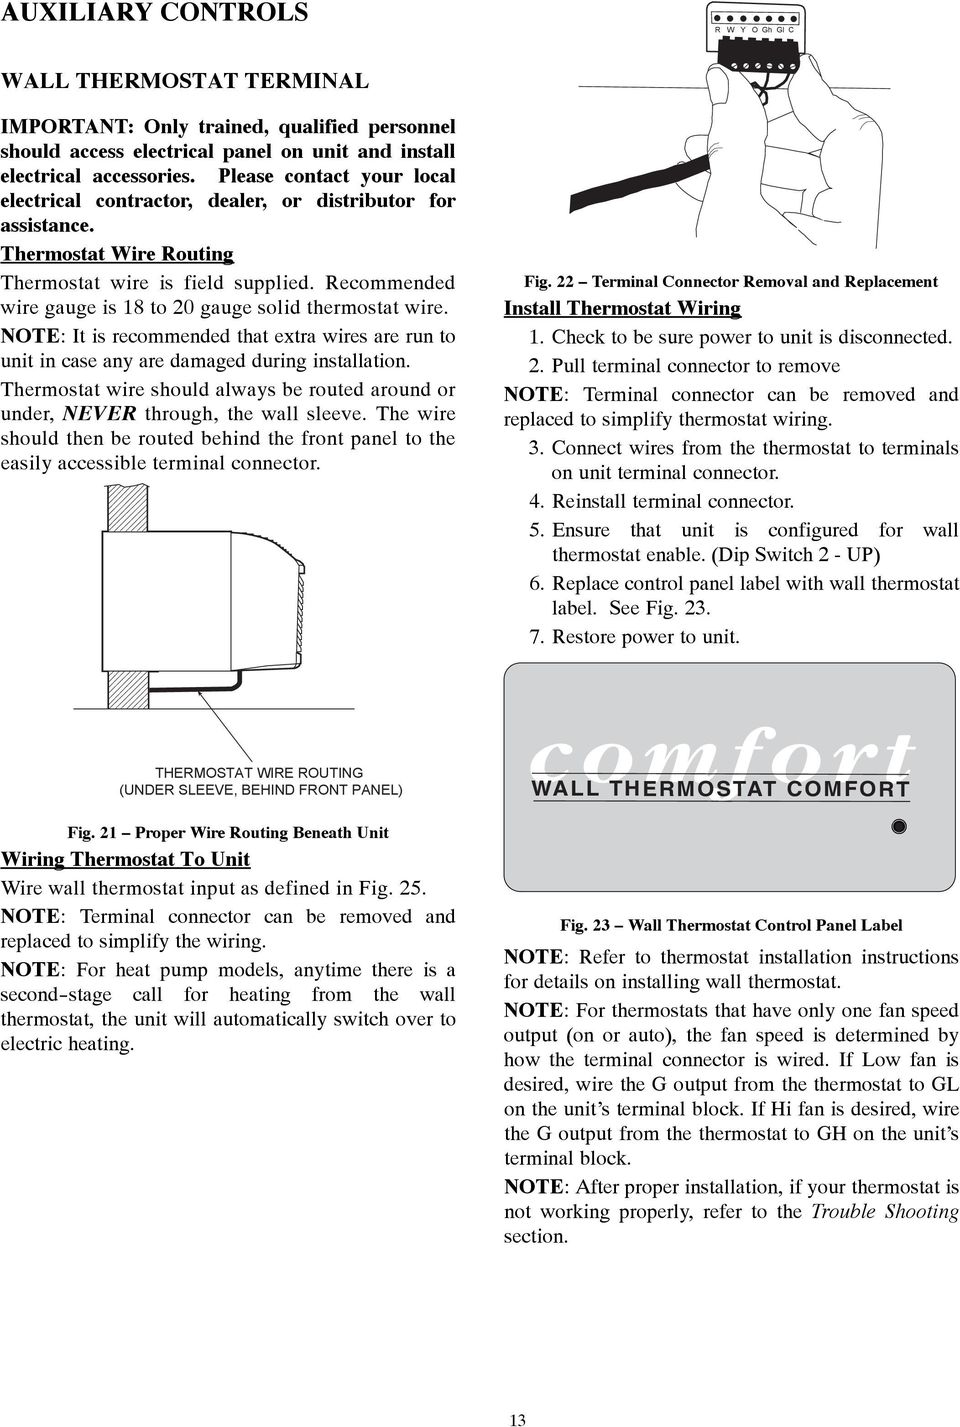 Installation And Operating Instructions Pdf Heat Pump Auxiliary Thermostat Wiring Recommended Wire Gauge Is 18 To 20 Solid Note It